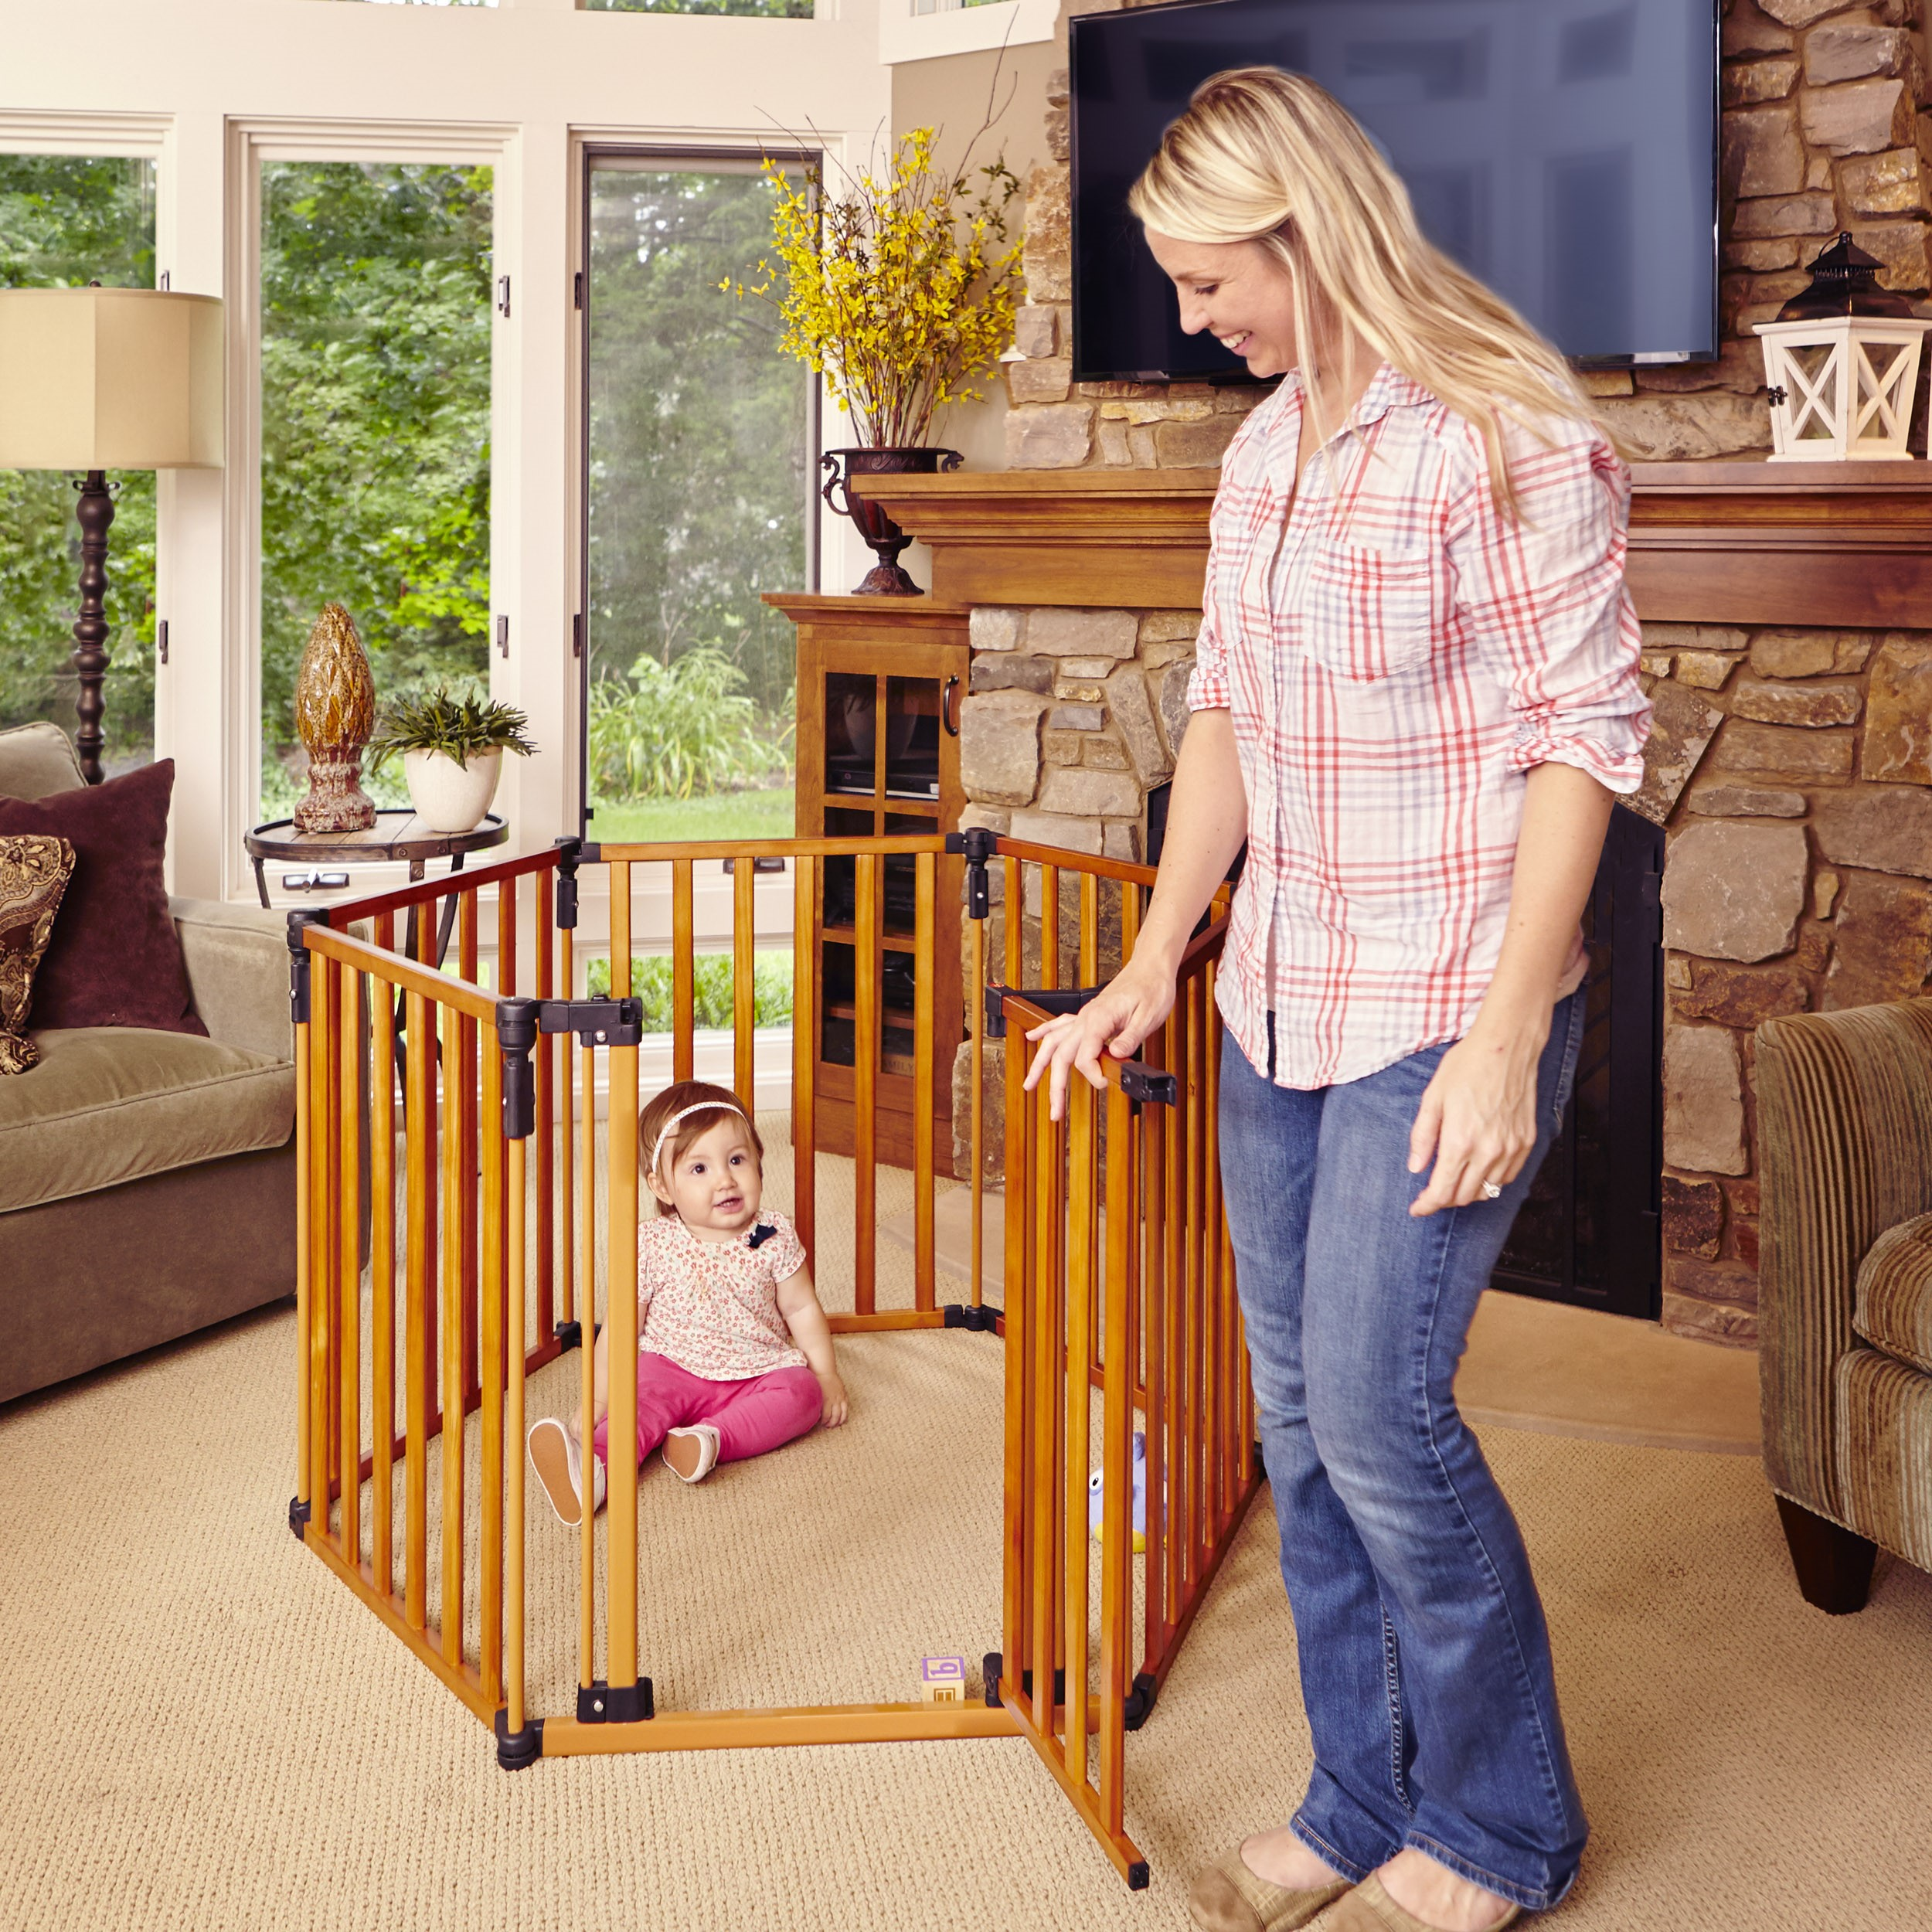 North States 3-in-1 Wooden Superyard, 12 Ft Baby Gate & Playard